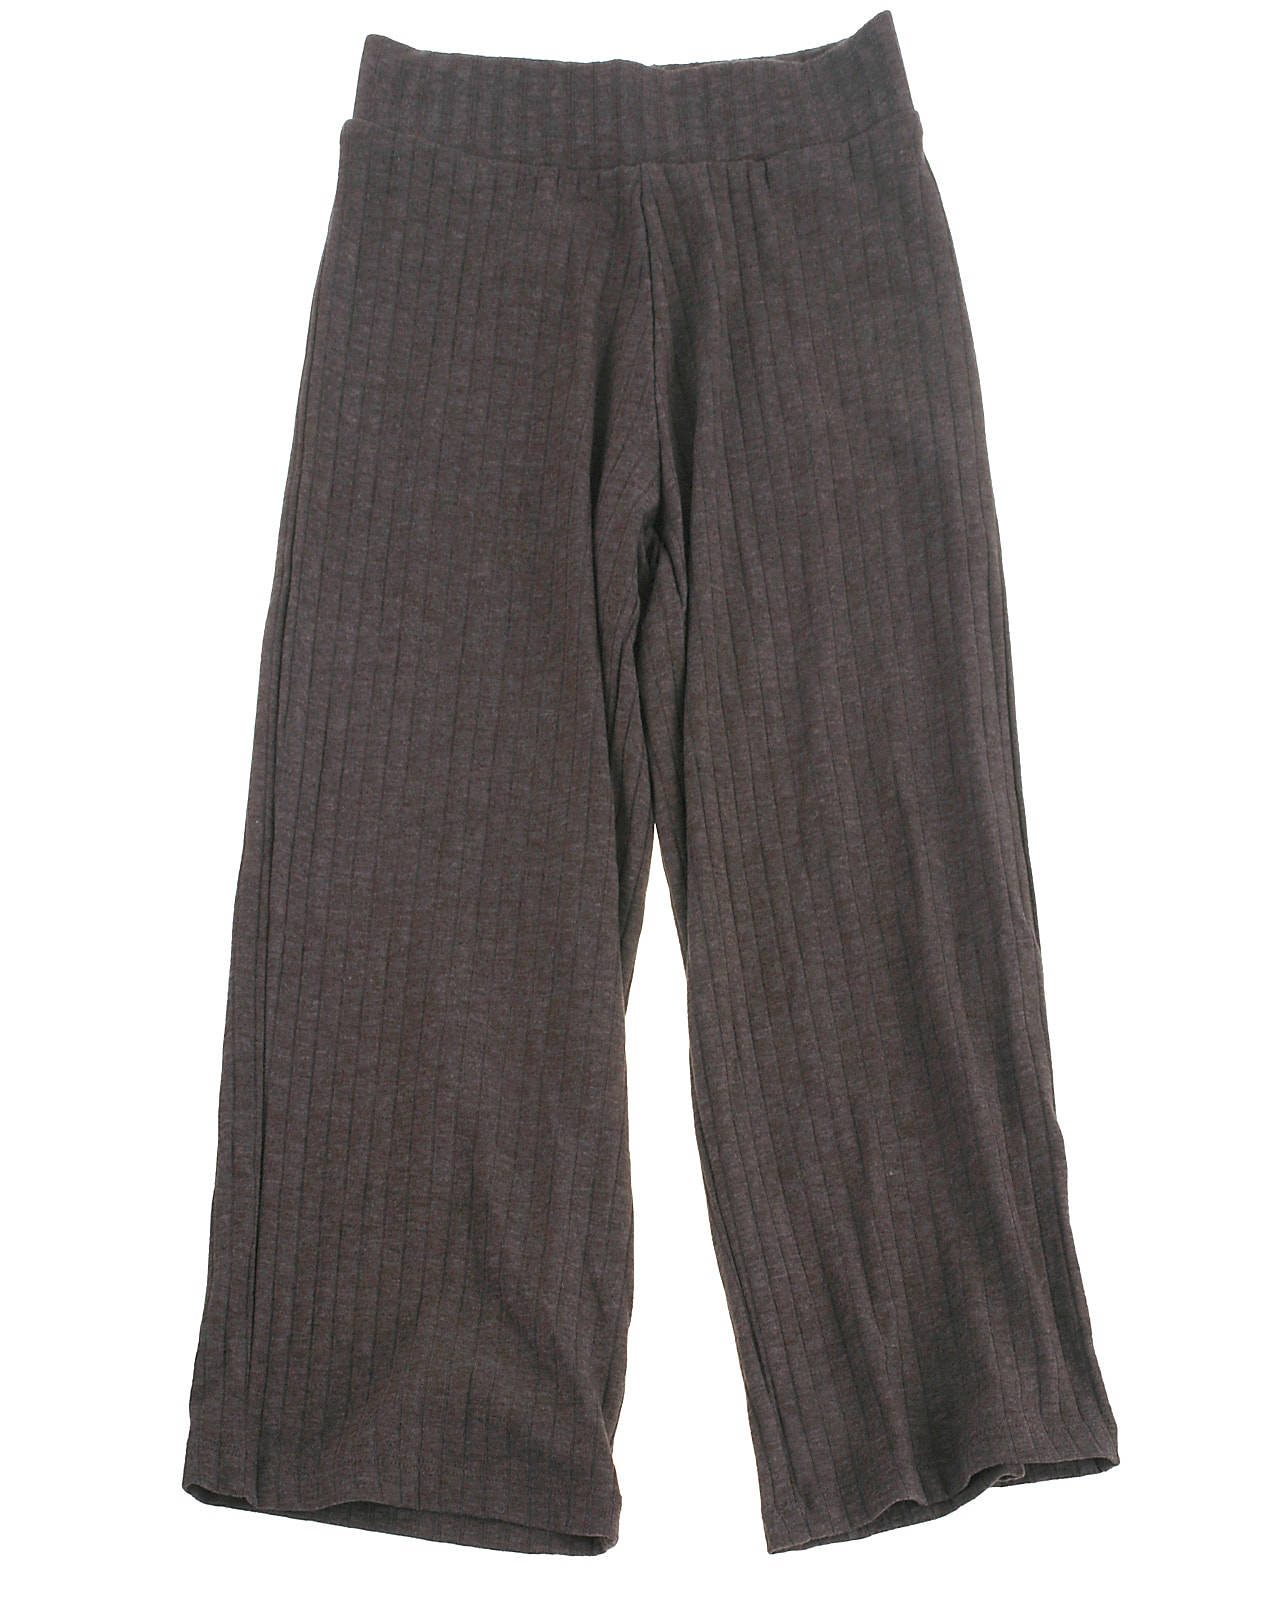 Image of Name It wide 7/8 pant, Nola, deeptaupe